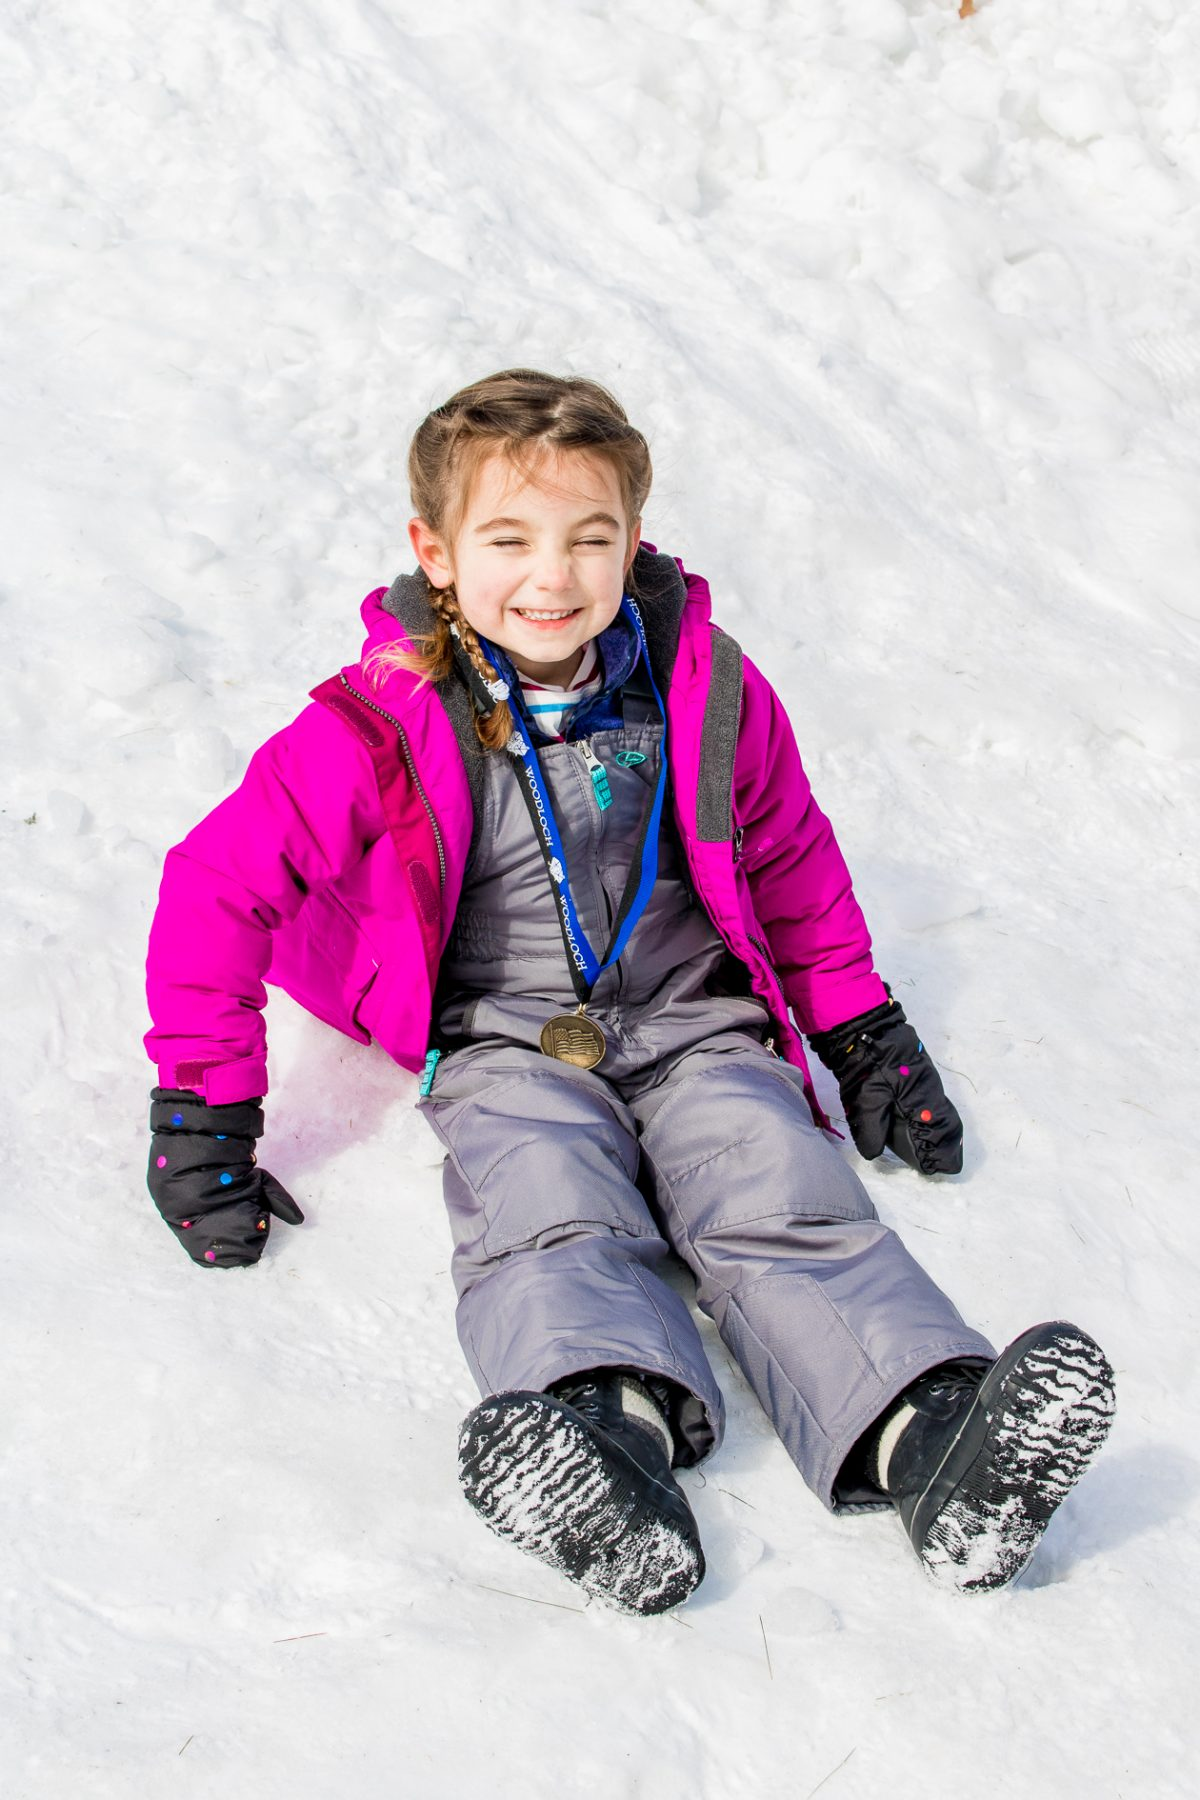 Little girl wearing snow suit and medal sitting in snow at Woodloch Pines Resort in Pocono Mountains